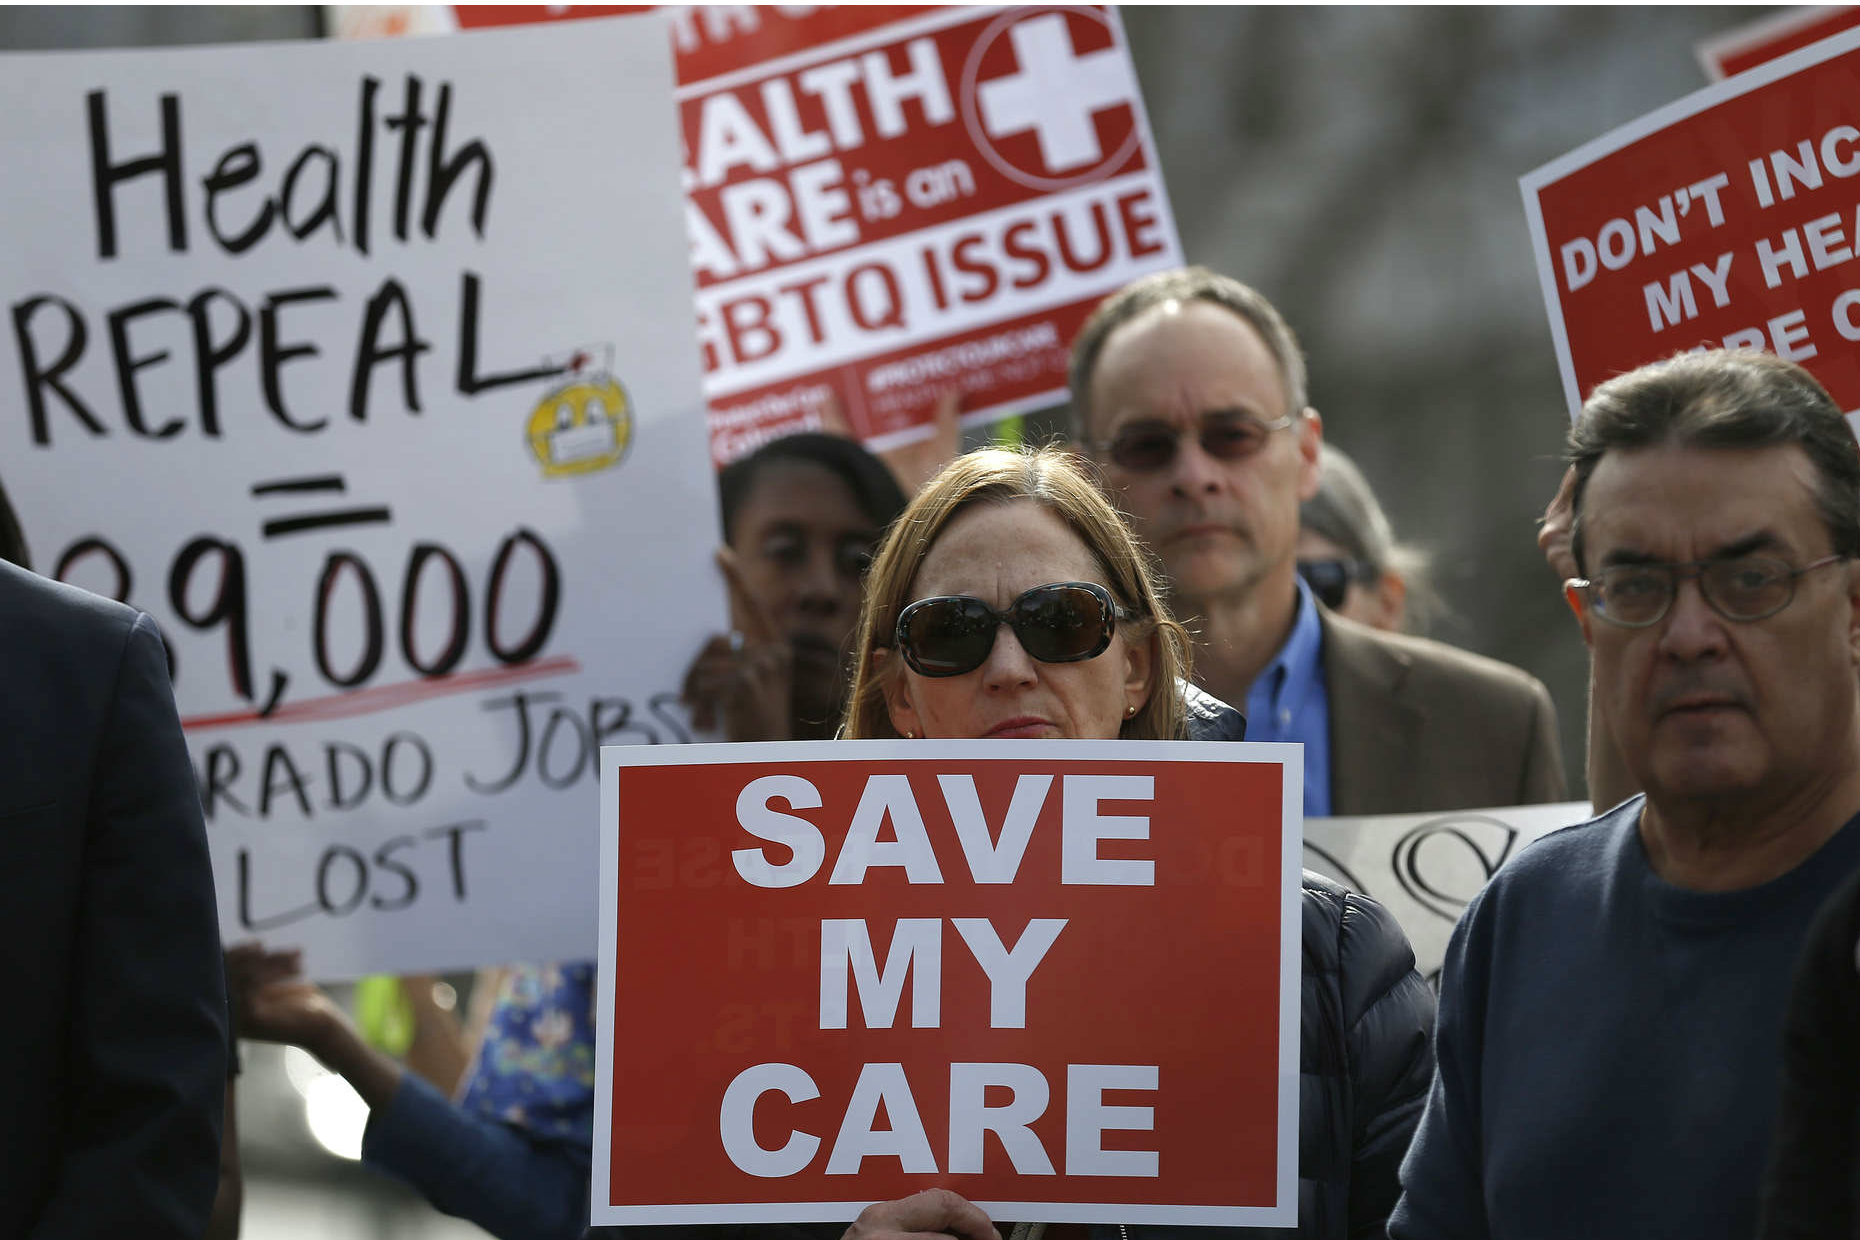 Supporters of the Affordable Care Act demonstrate on the steps of the Colorado Capitol in Denver on Feb. 7.